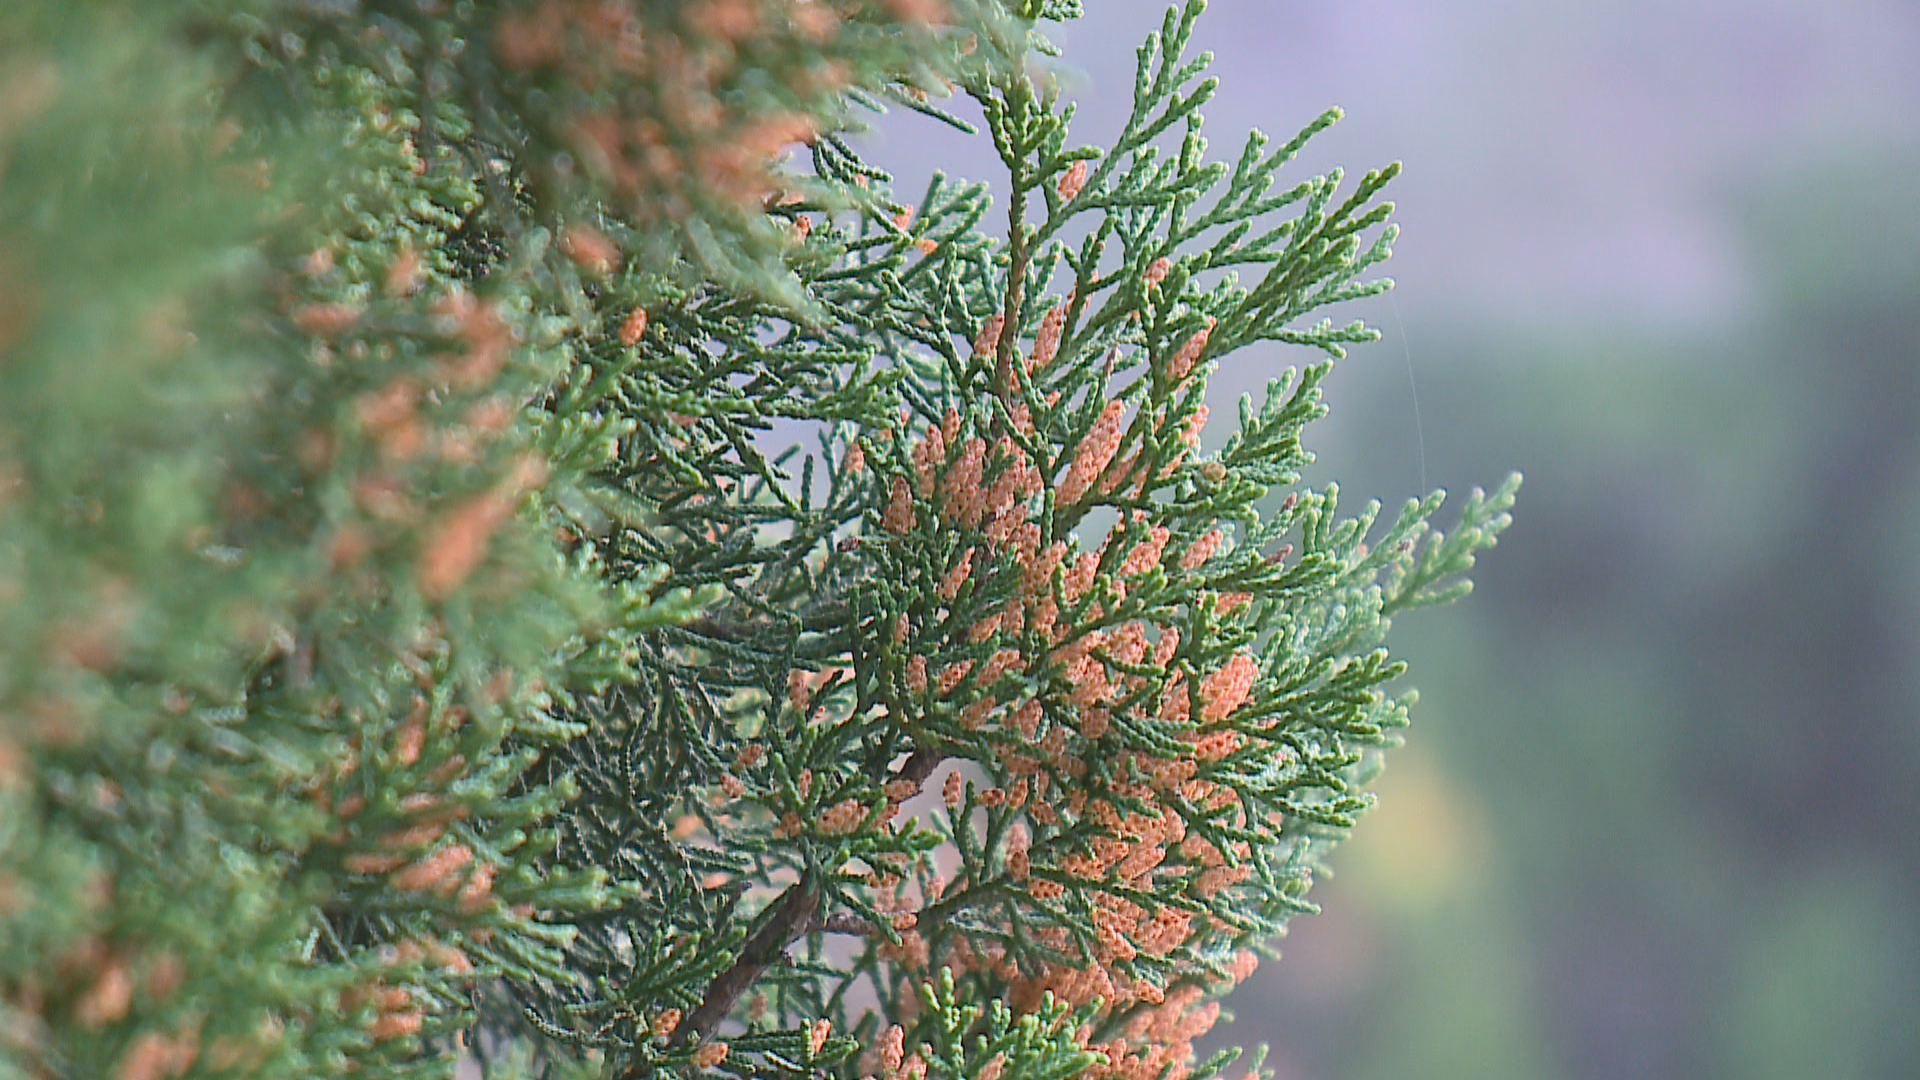 New therapy to treat cedar allergies coming soon